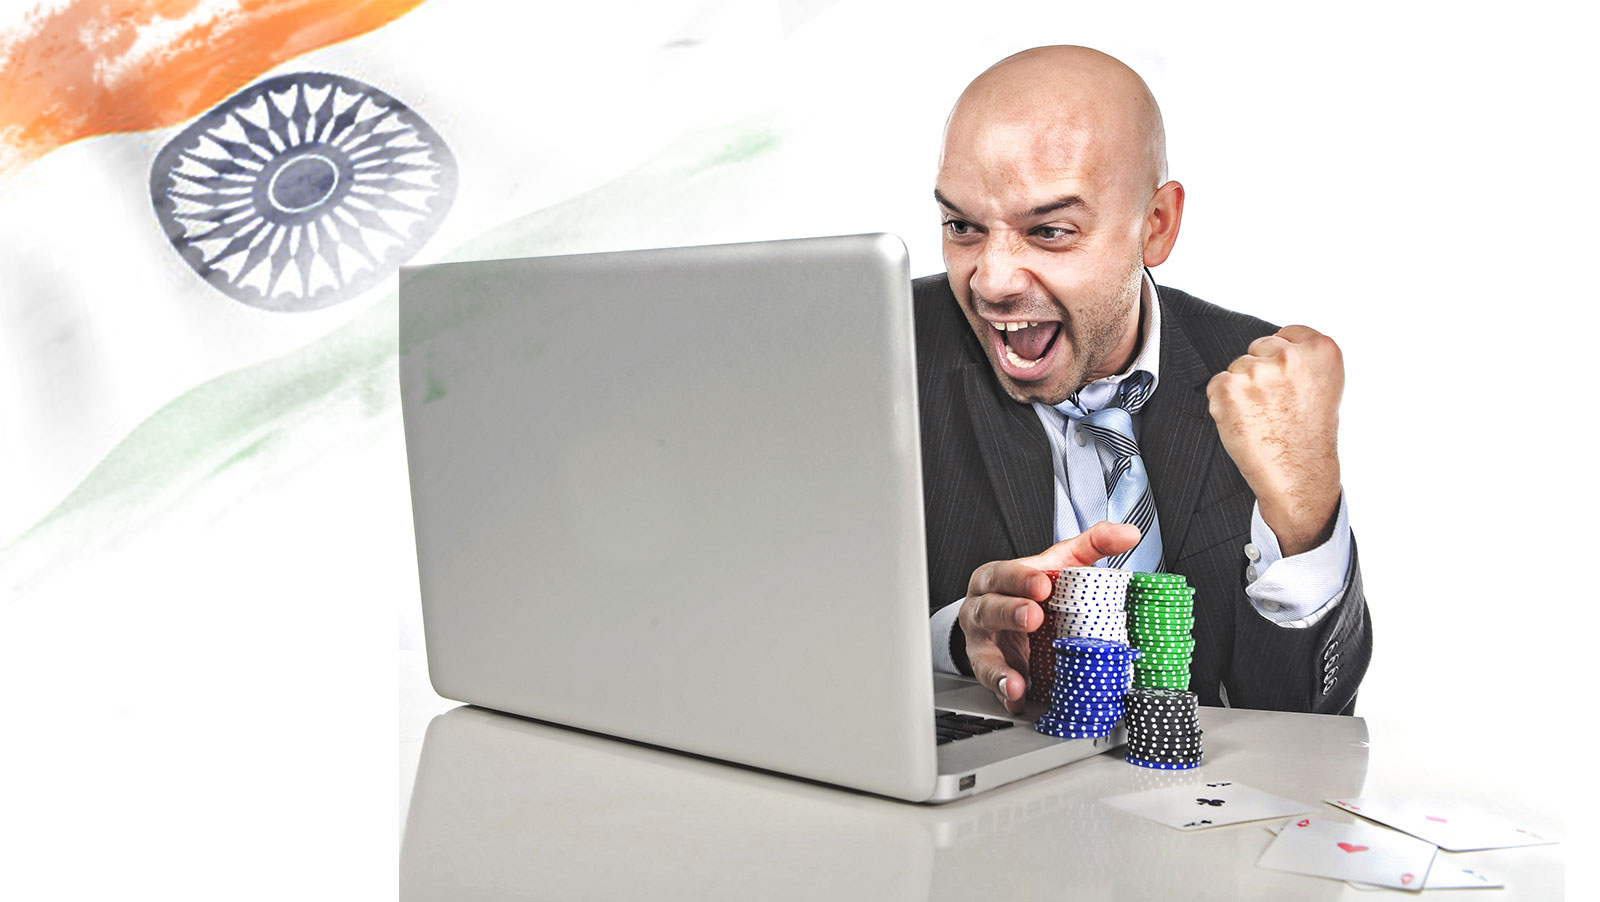 PokerStars set to launch poker site in India